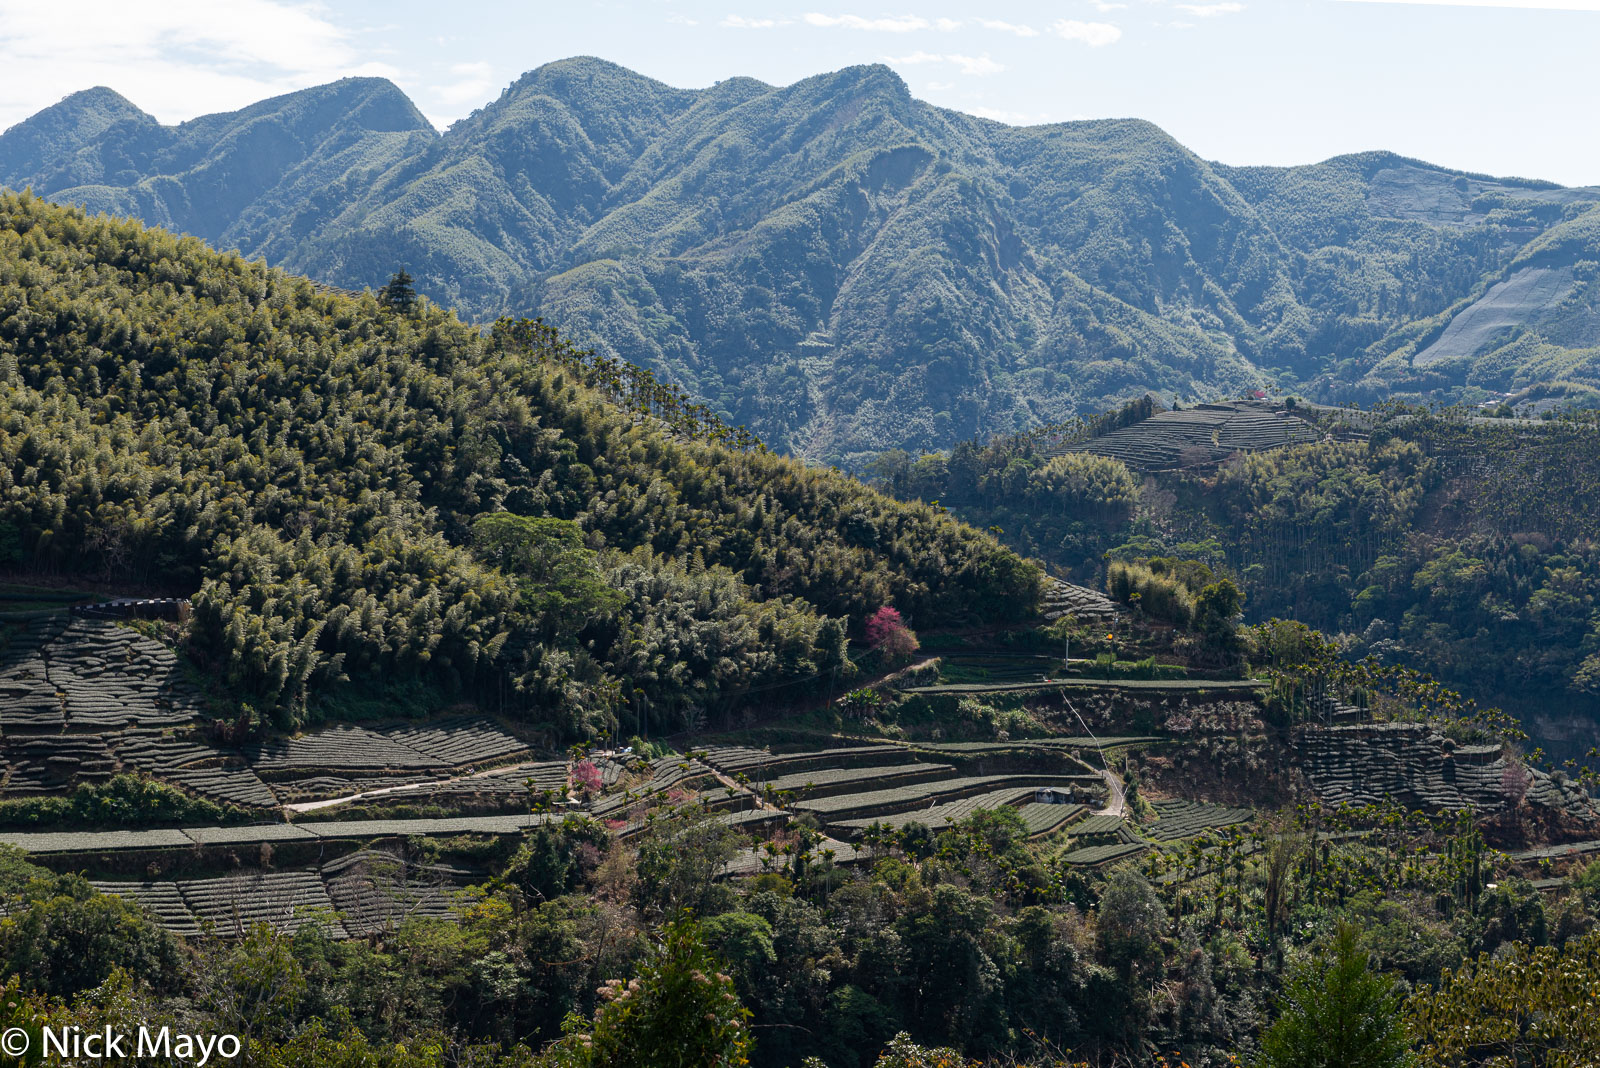 Tea fields and bamboo at Ruifeng in Chiayi County.